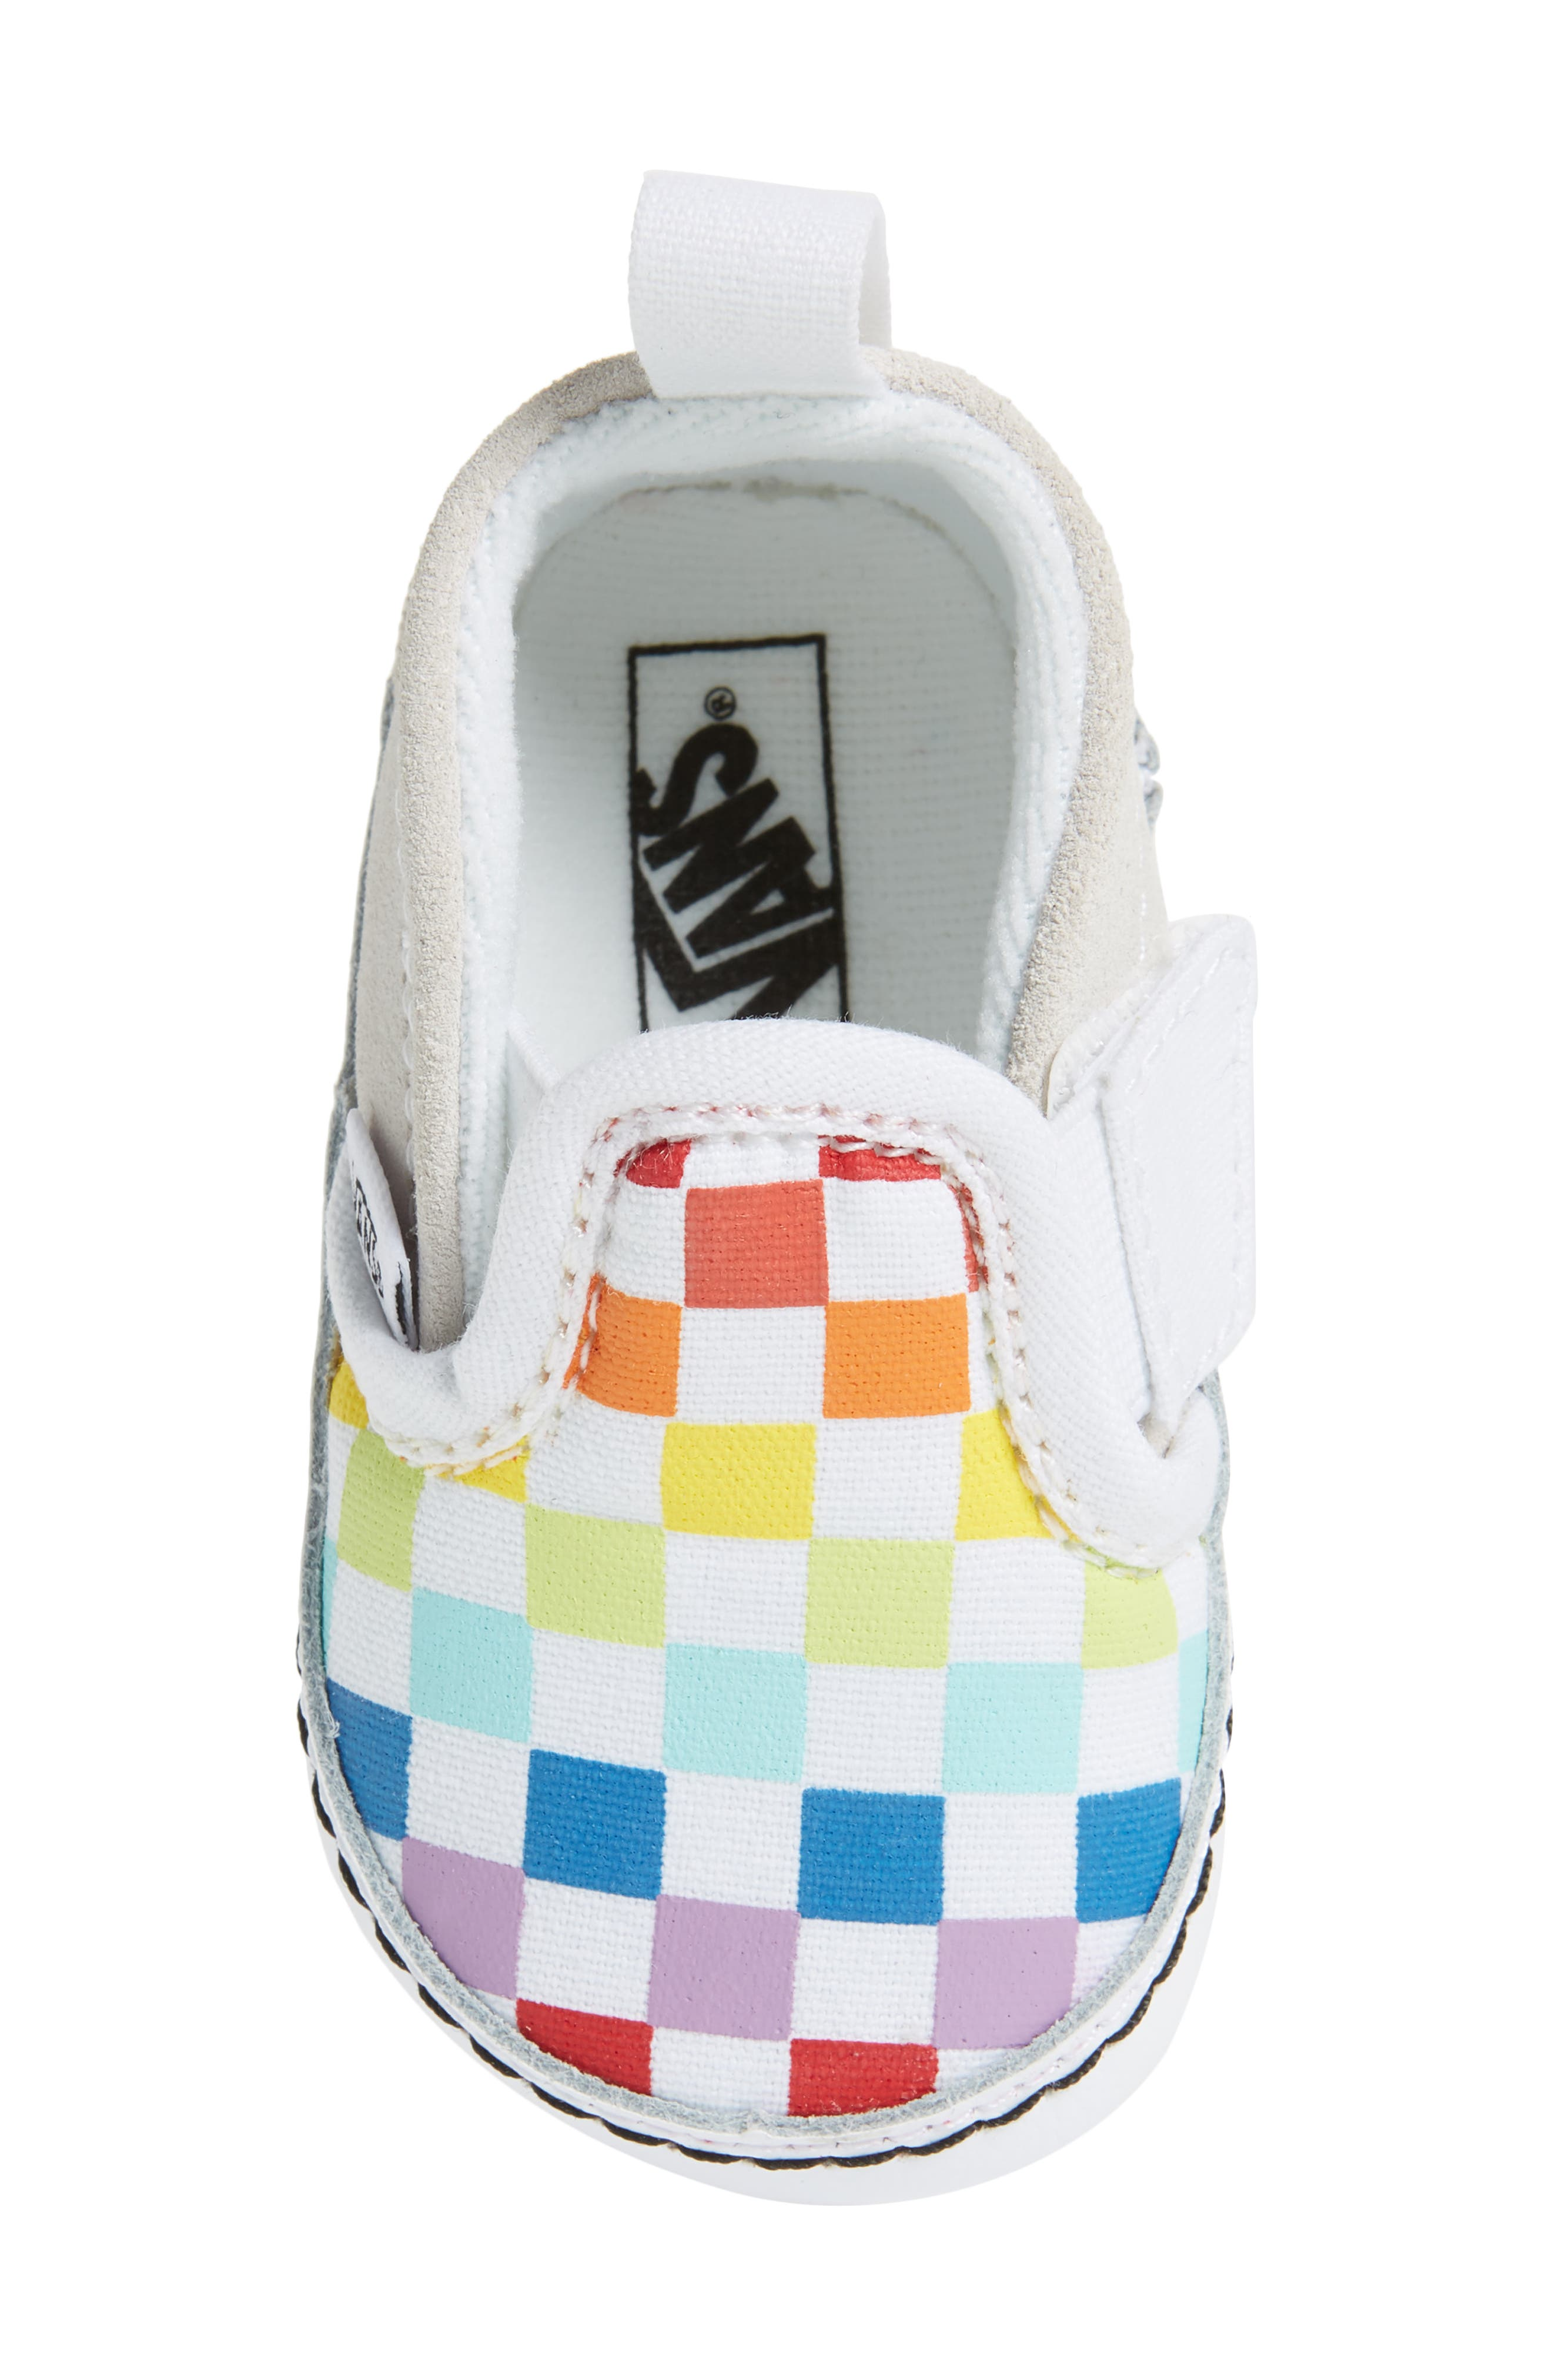 VANS, Slip-On Crib Shoe, Alternate thumbnail 5, color, CHECKERBOARD RAINBOW/ WHITE